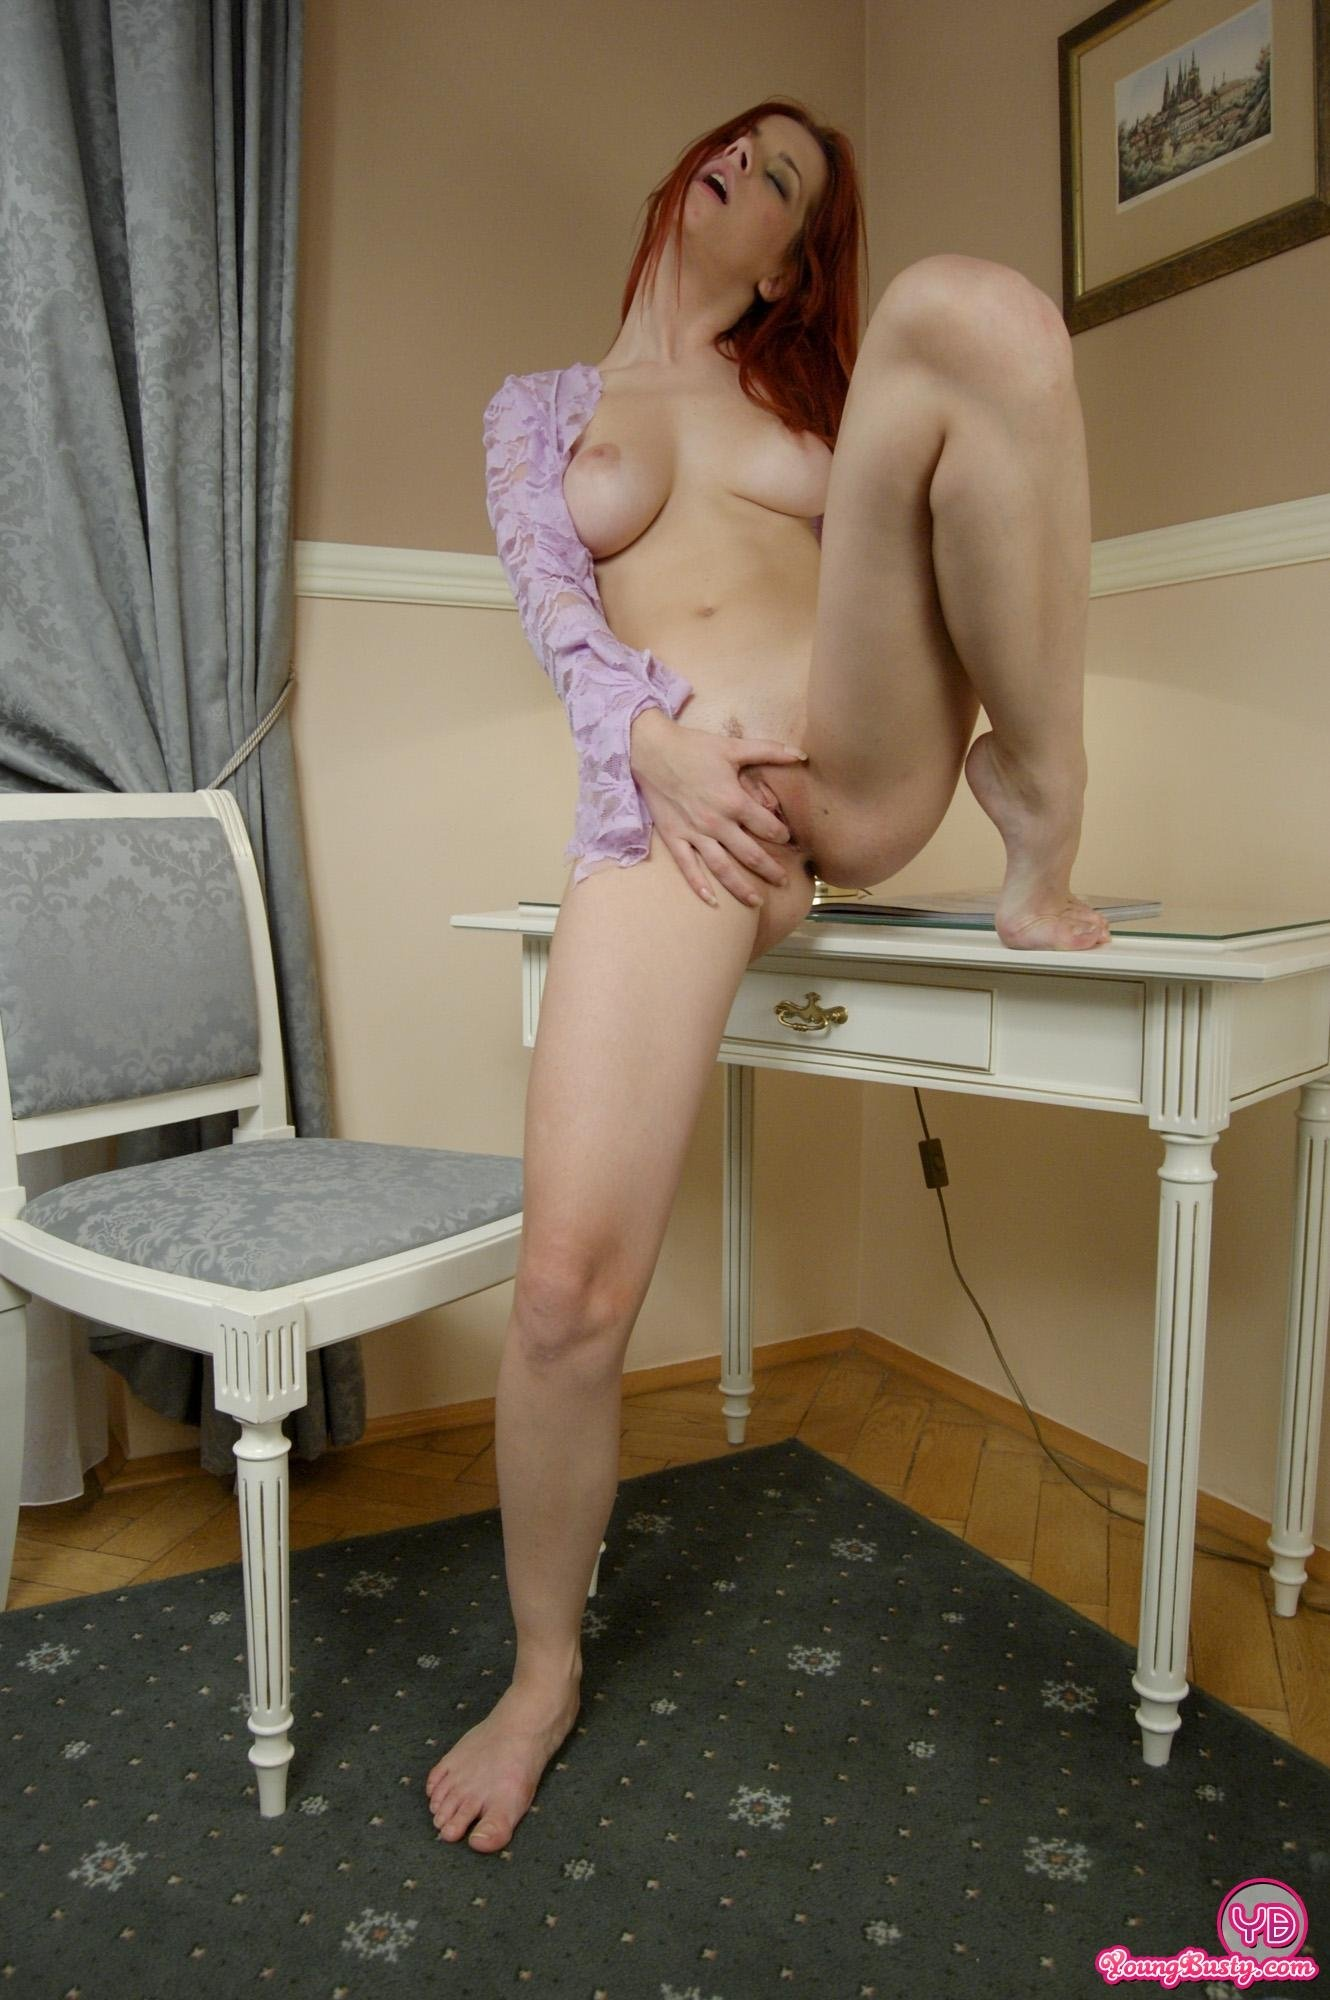 Cock go inside that toy vaginal